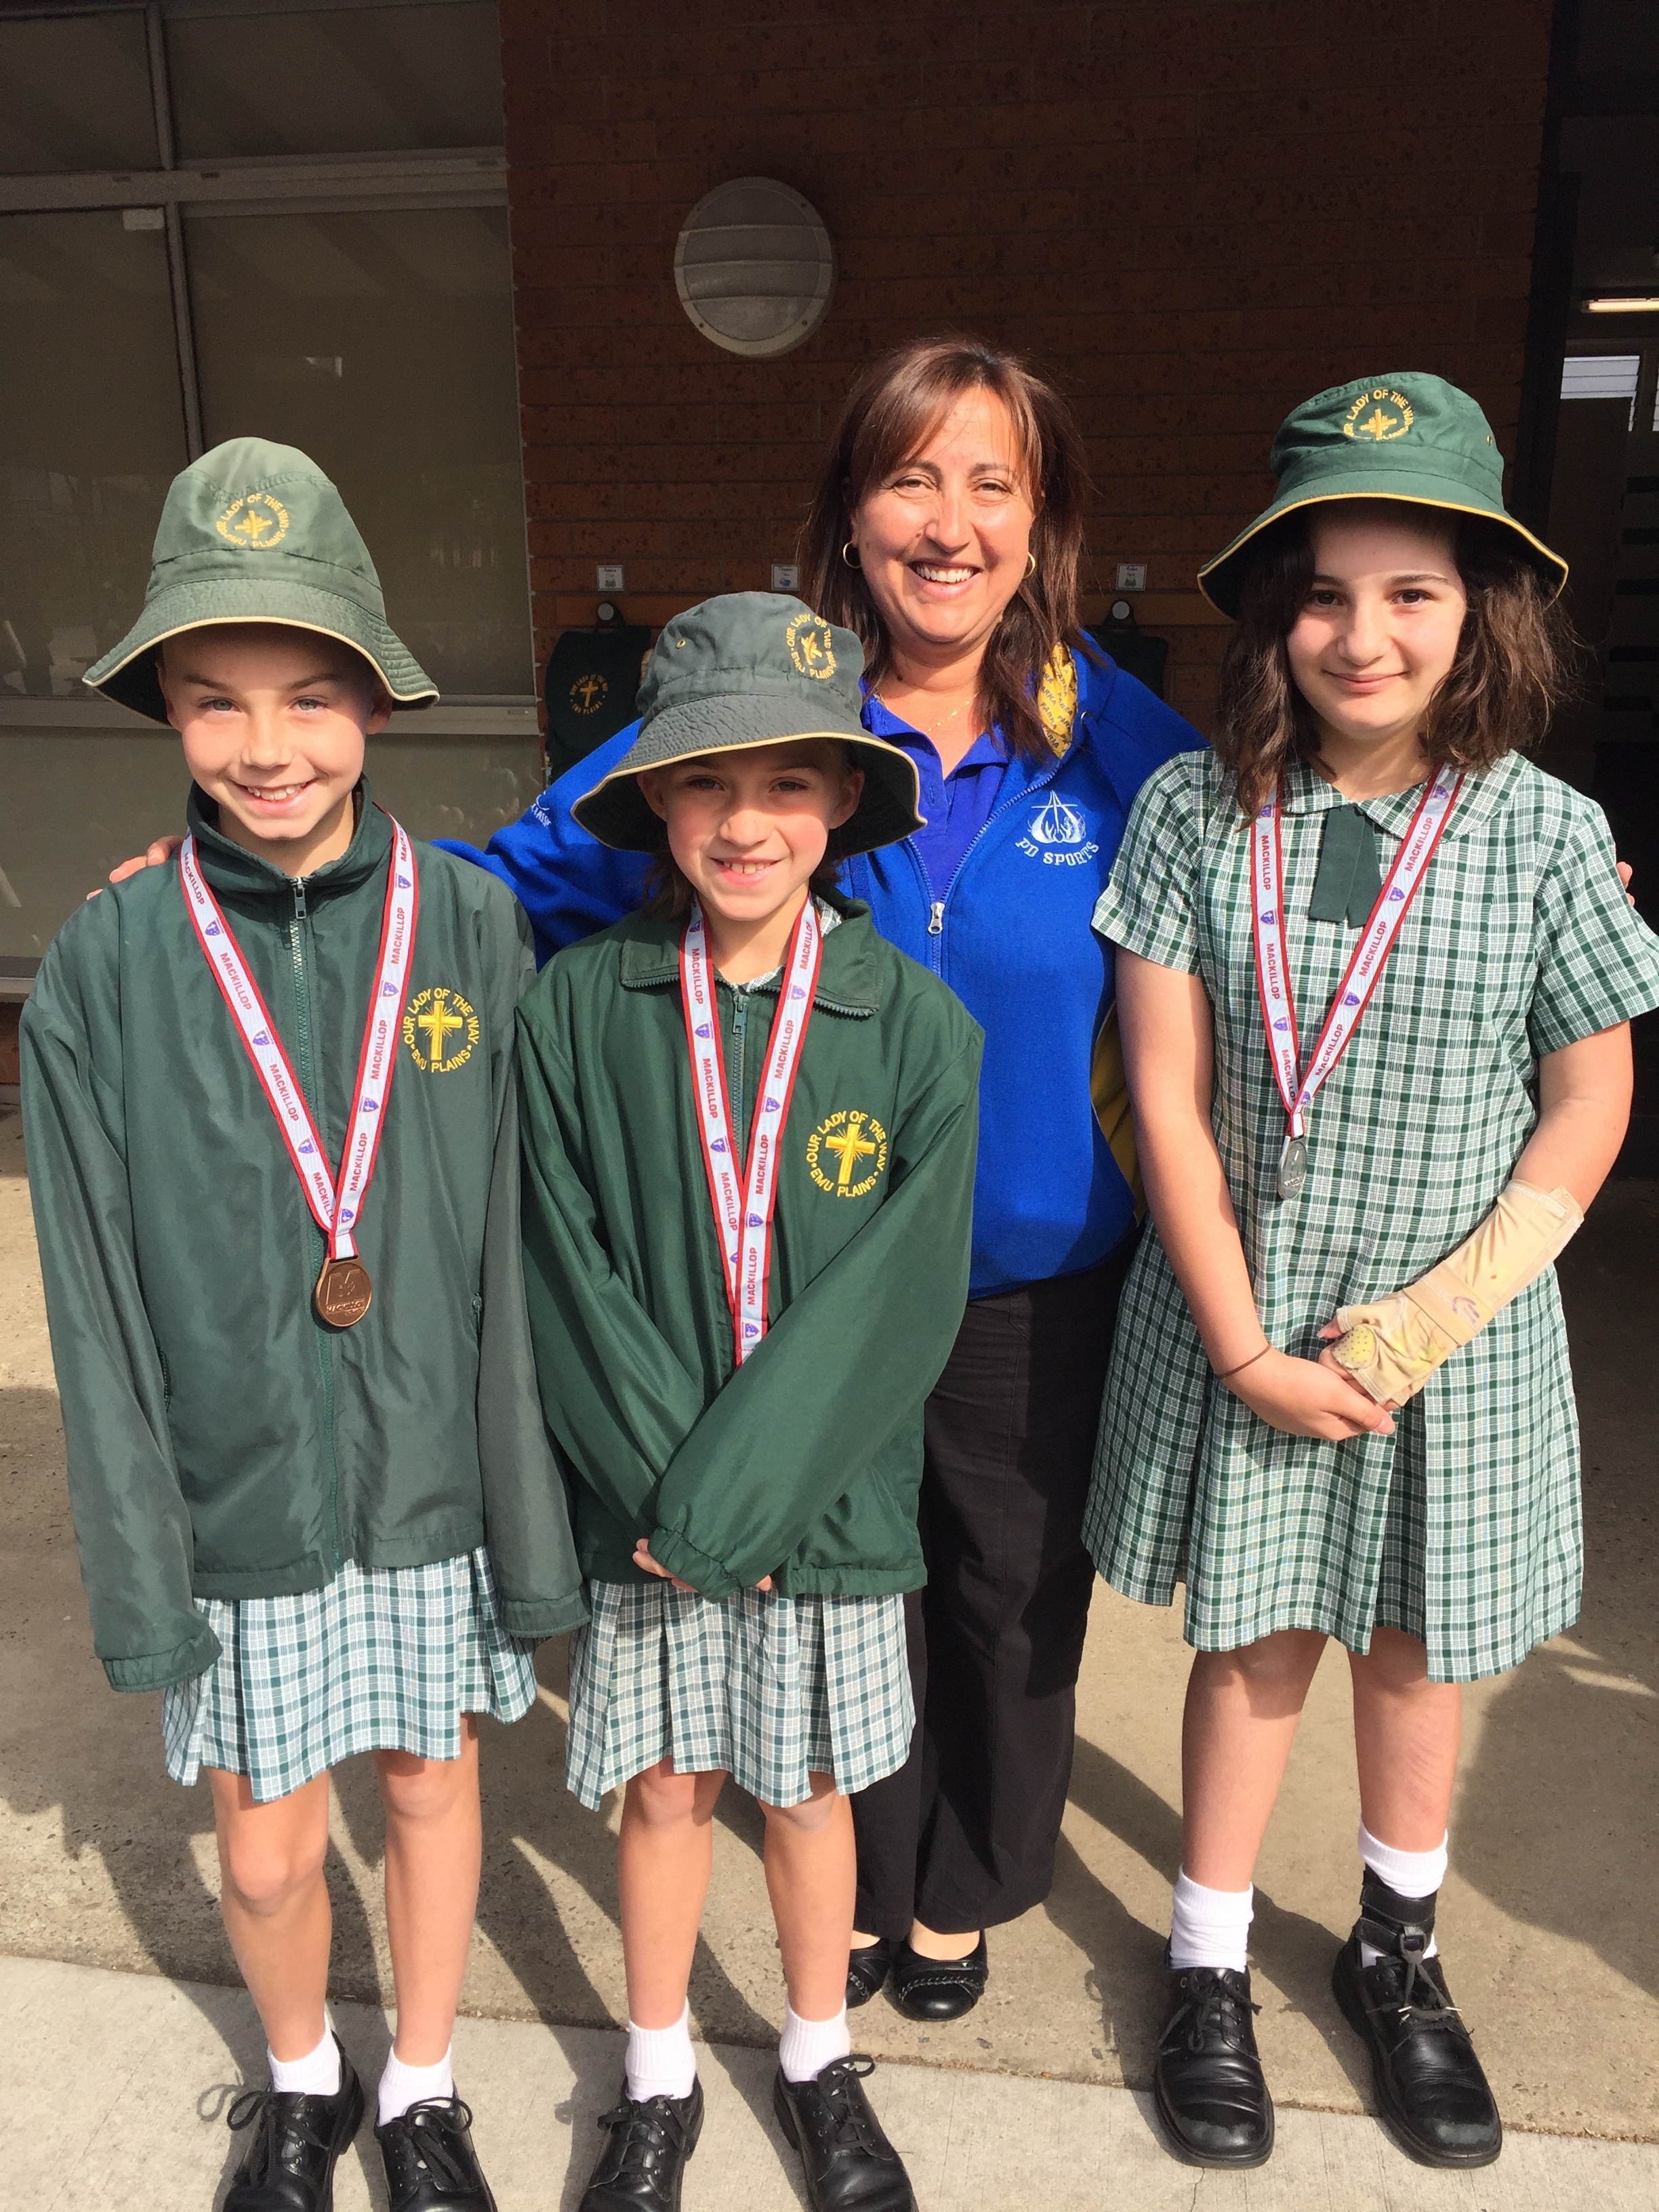 Margaret Thornton presents medals from MacKillop Cup September 2016